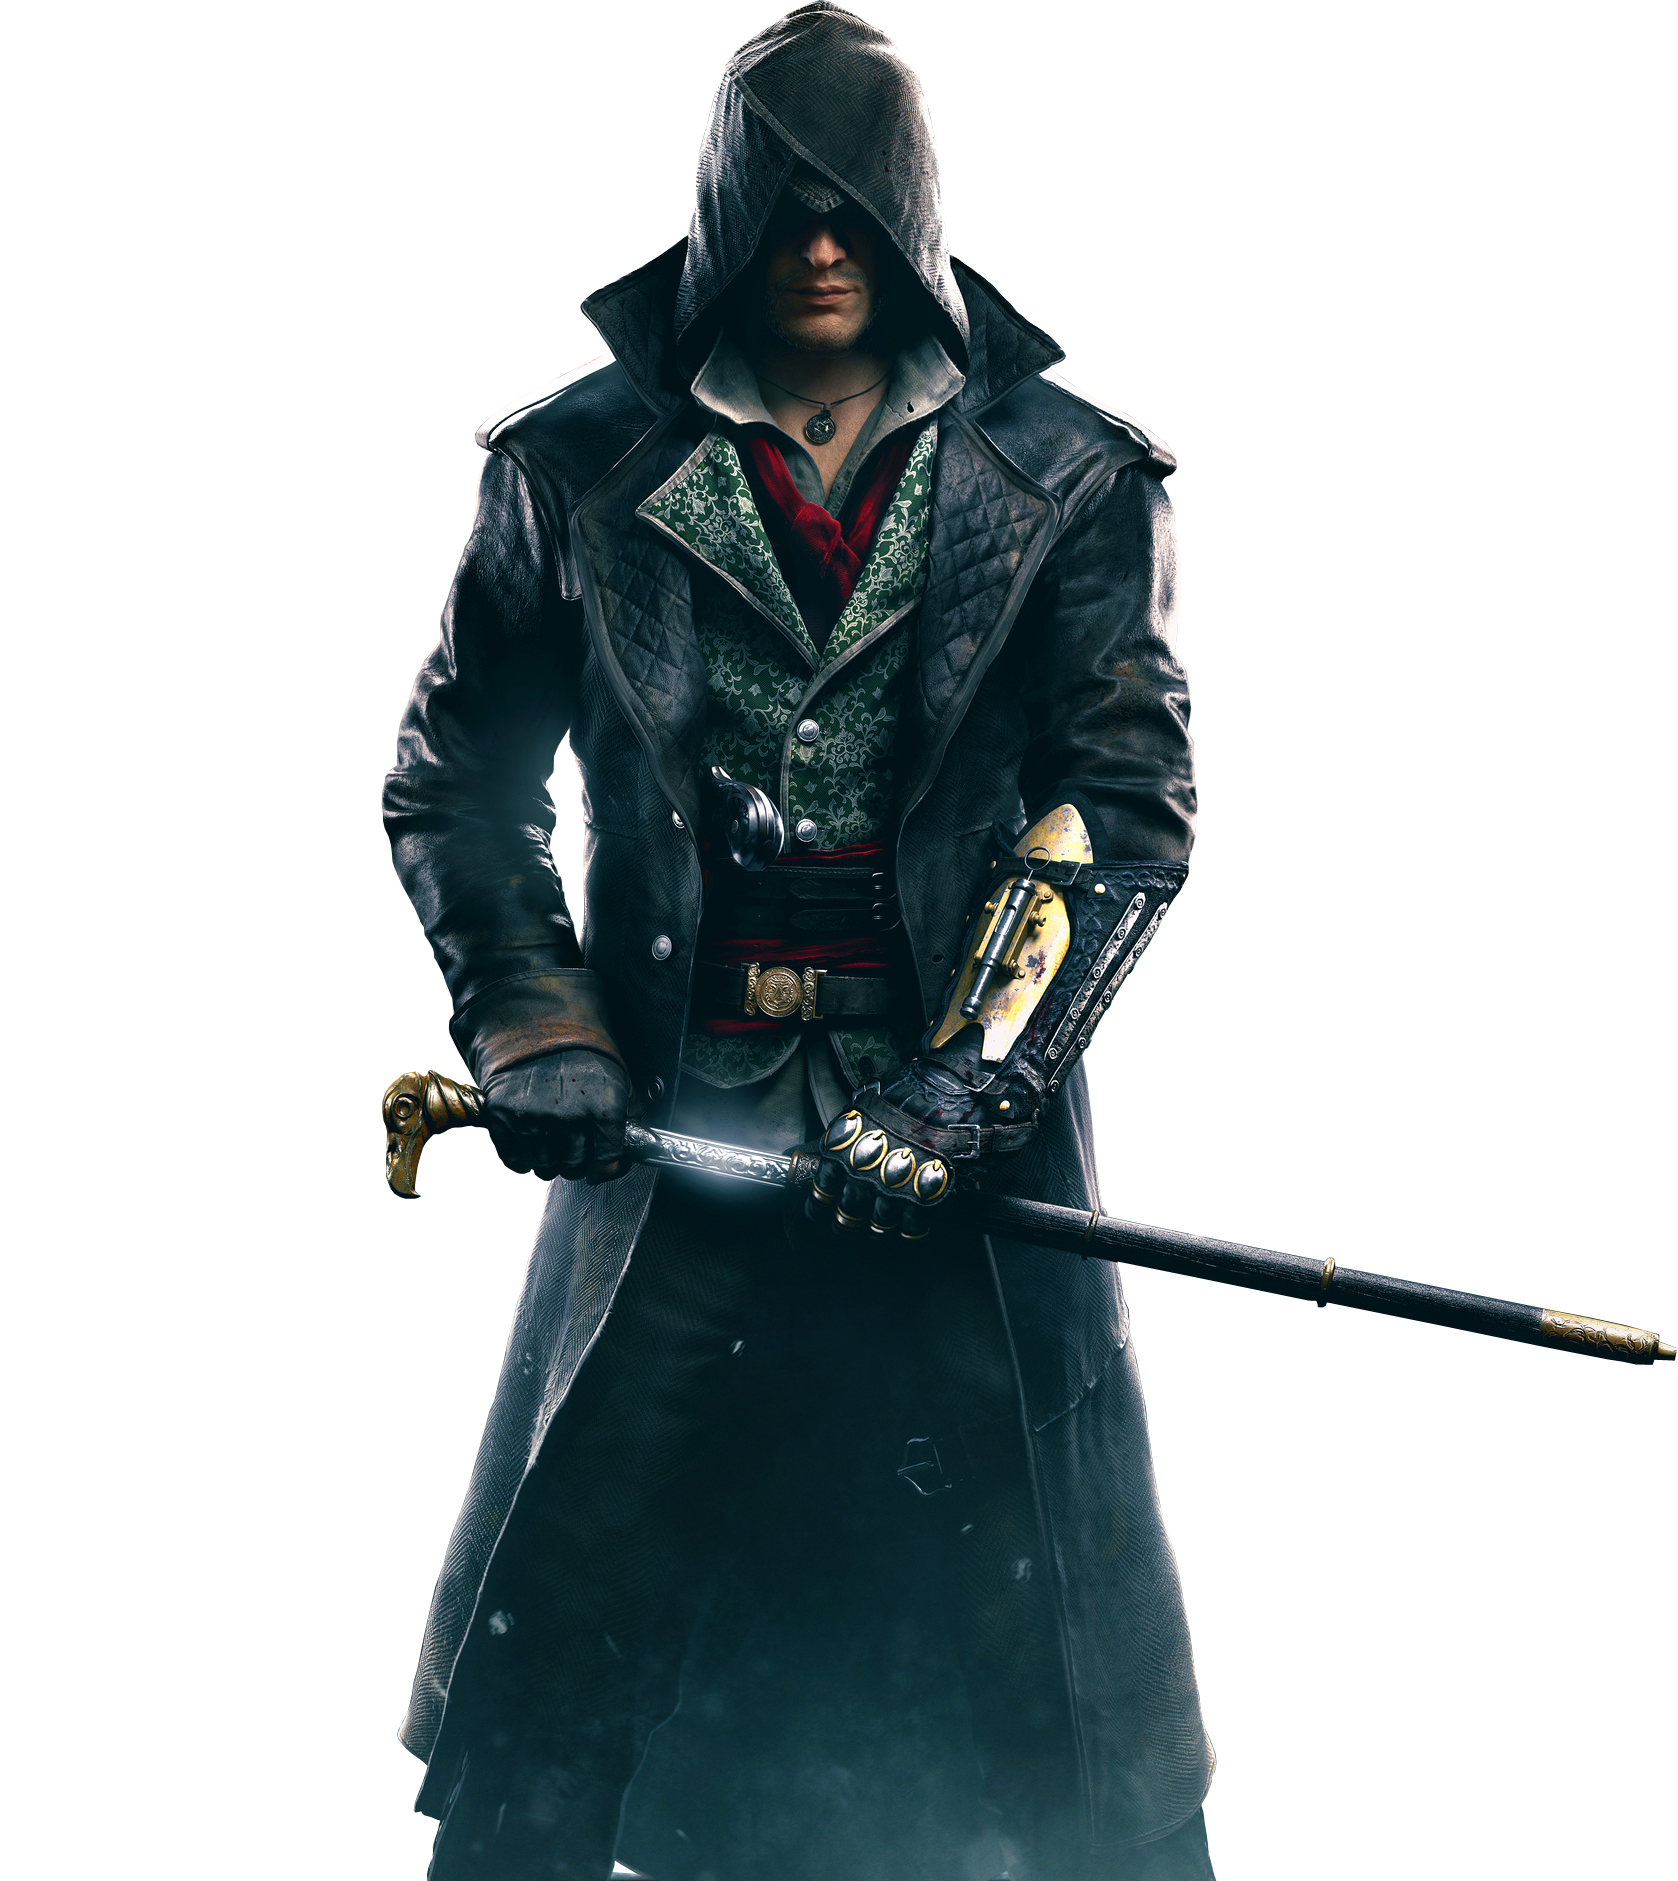 Assassinu0027s Creed Syndicate - Jacob Frye. « : 15 Mayıs 2015, 02:20:45 » - Assassin Creed Syndicate PNG